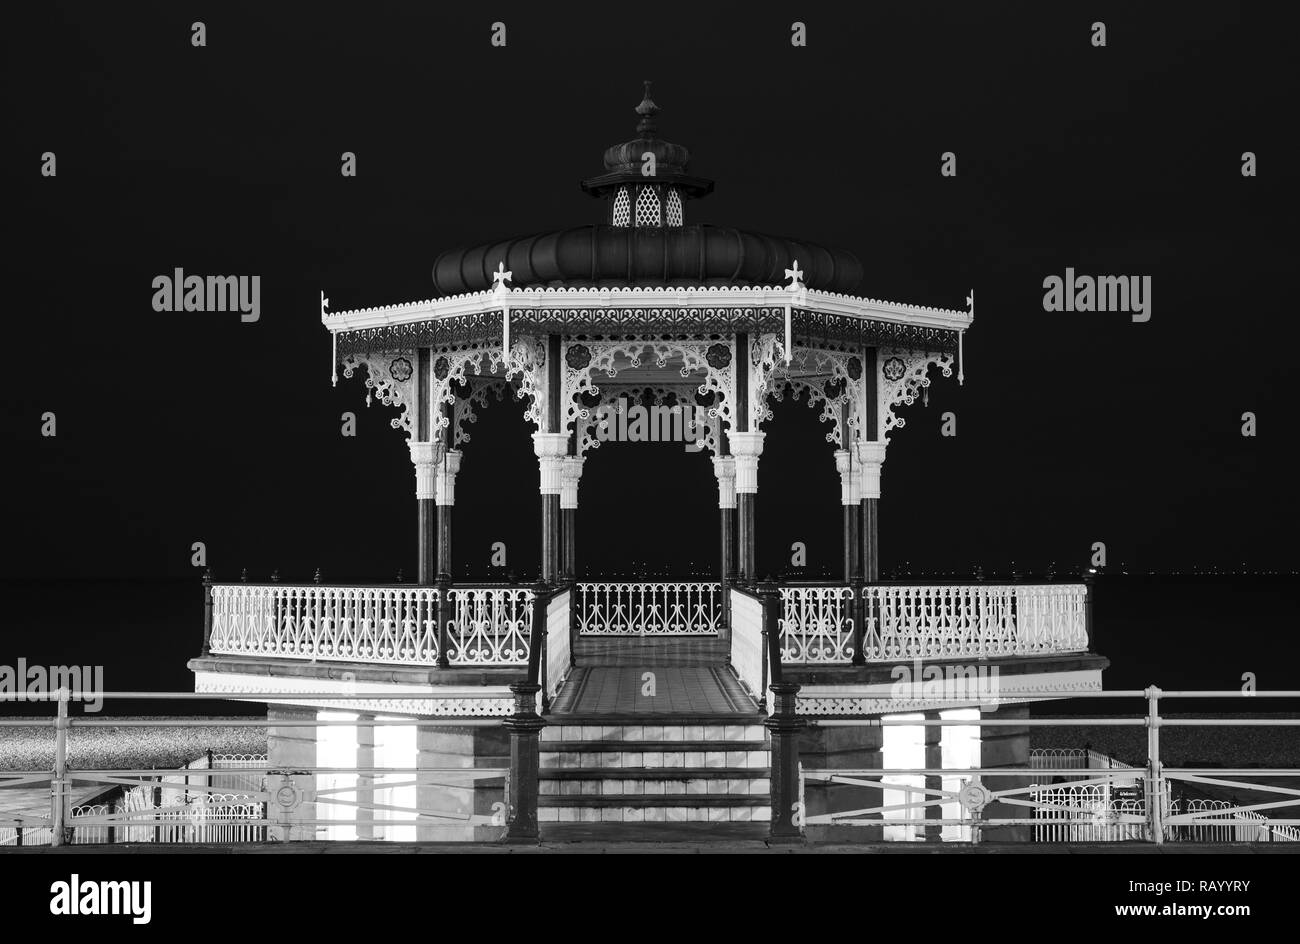 Restored Victorian bandstand on Kings Esplanade, Brighton, East Sussex, UK. Photographed at night. The bandstand is a Grade II listed building. - Stock Image